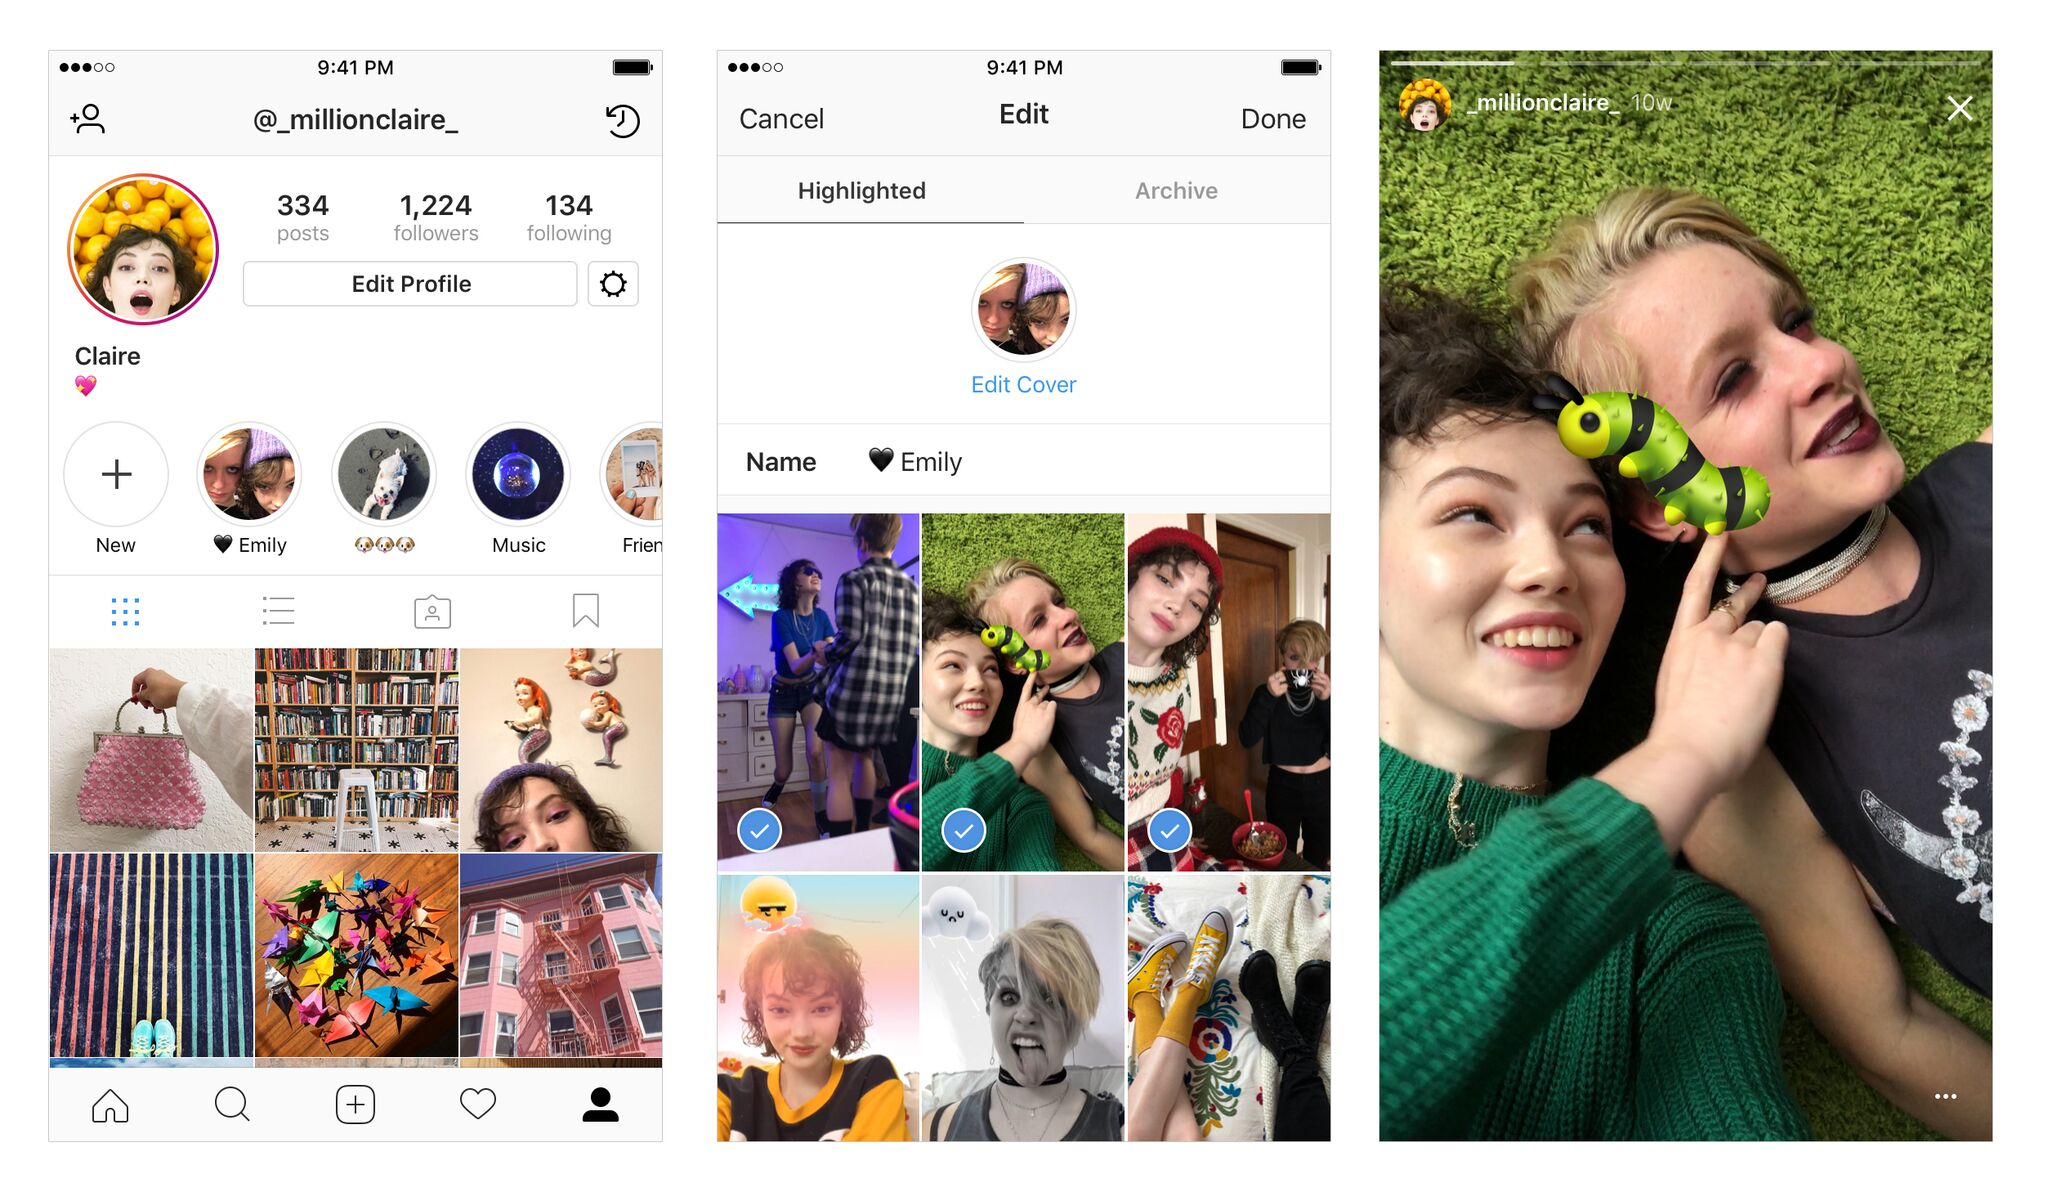 Instagram Introduces Stories Highlights and Stories Archive Features